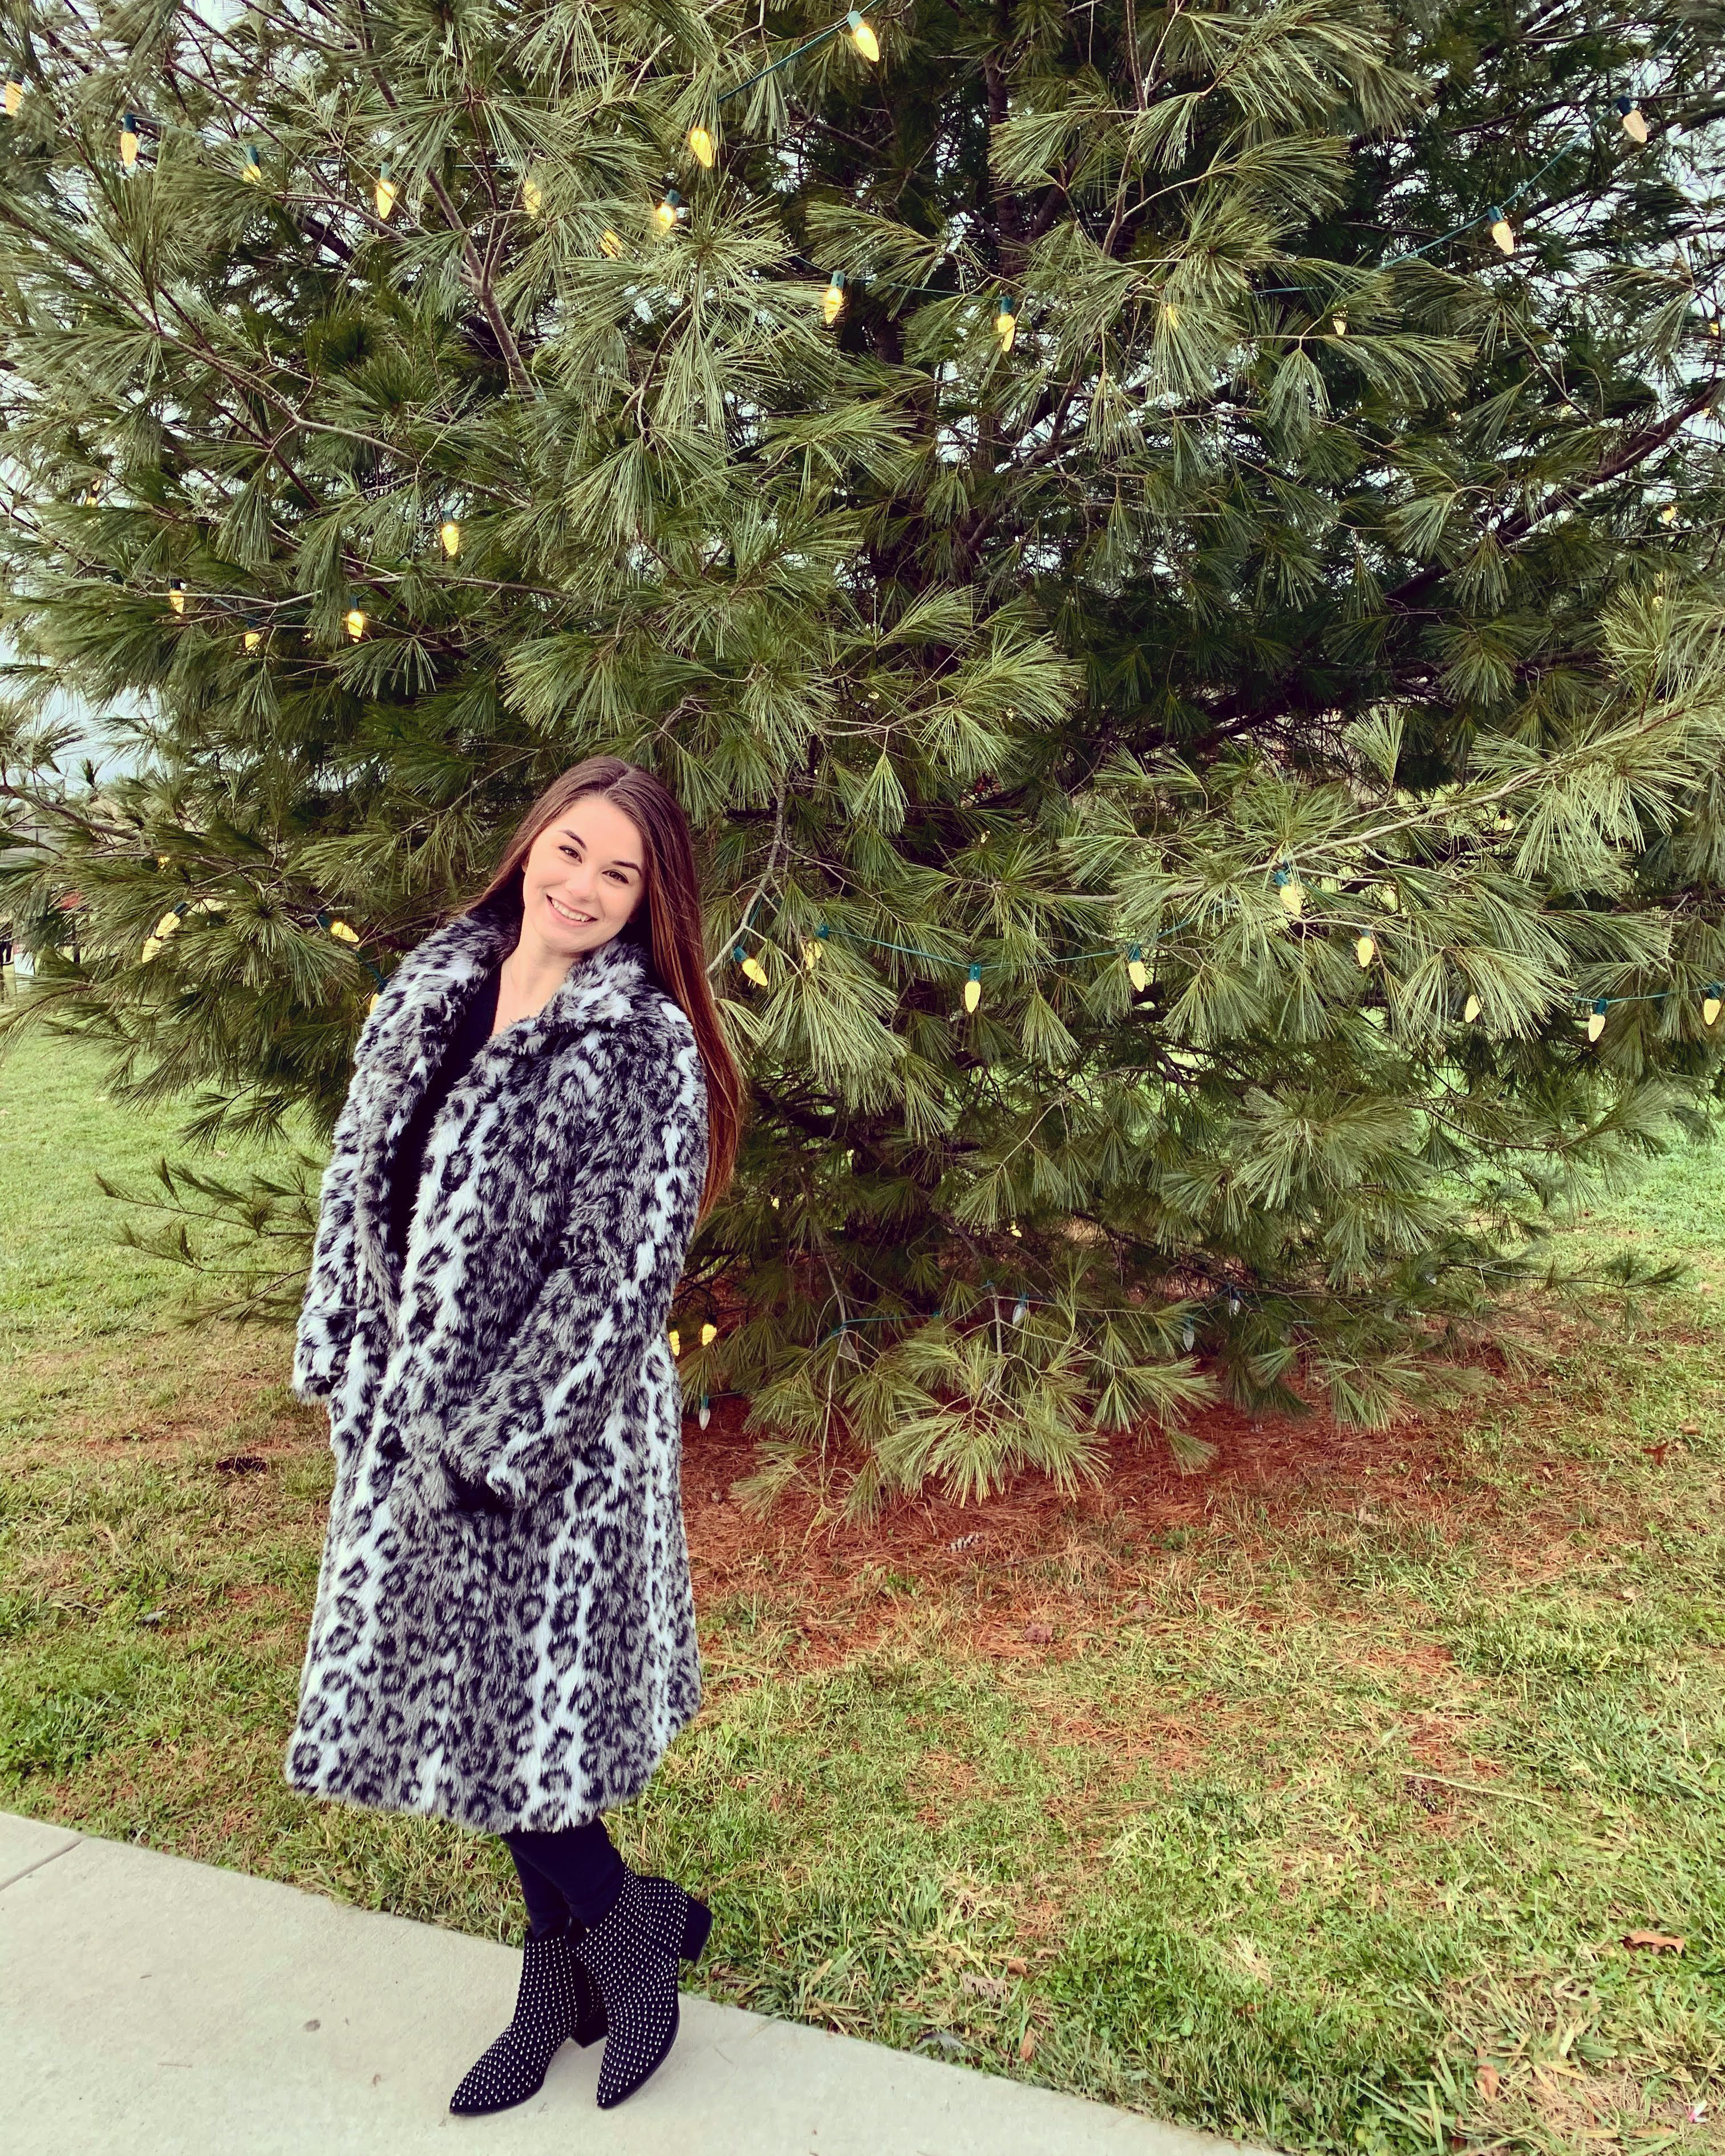 Lindsey Germann standing in front of a tree